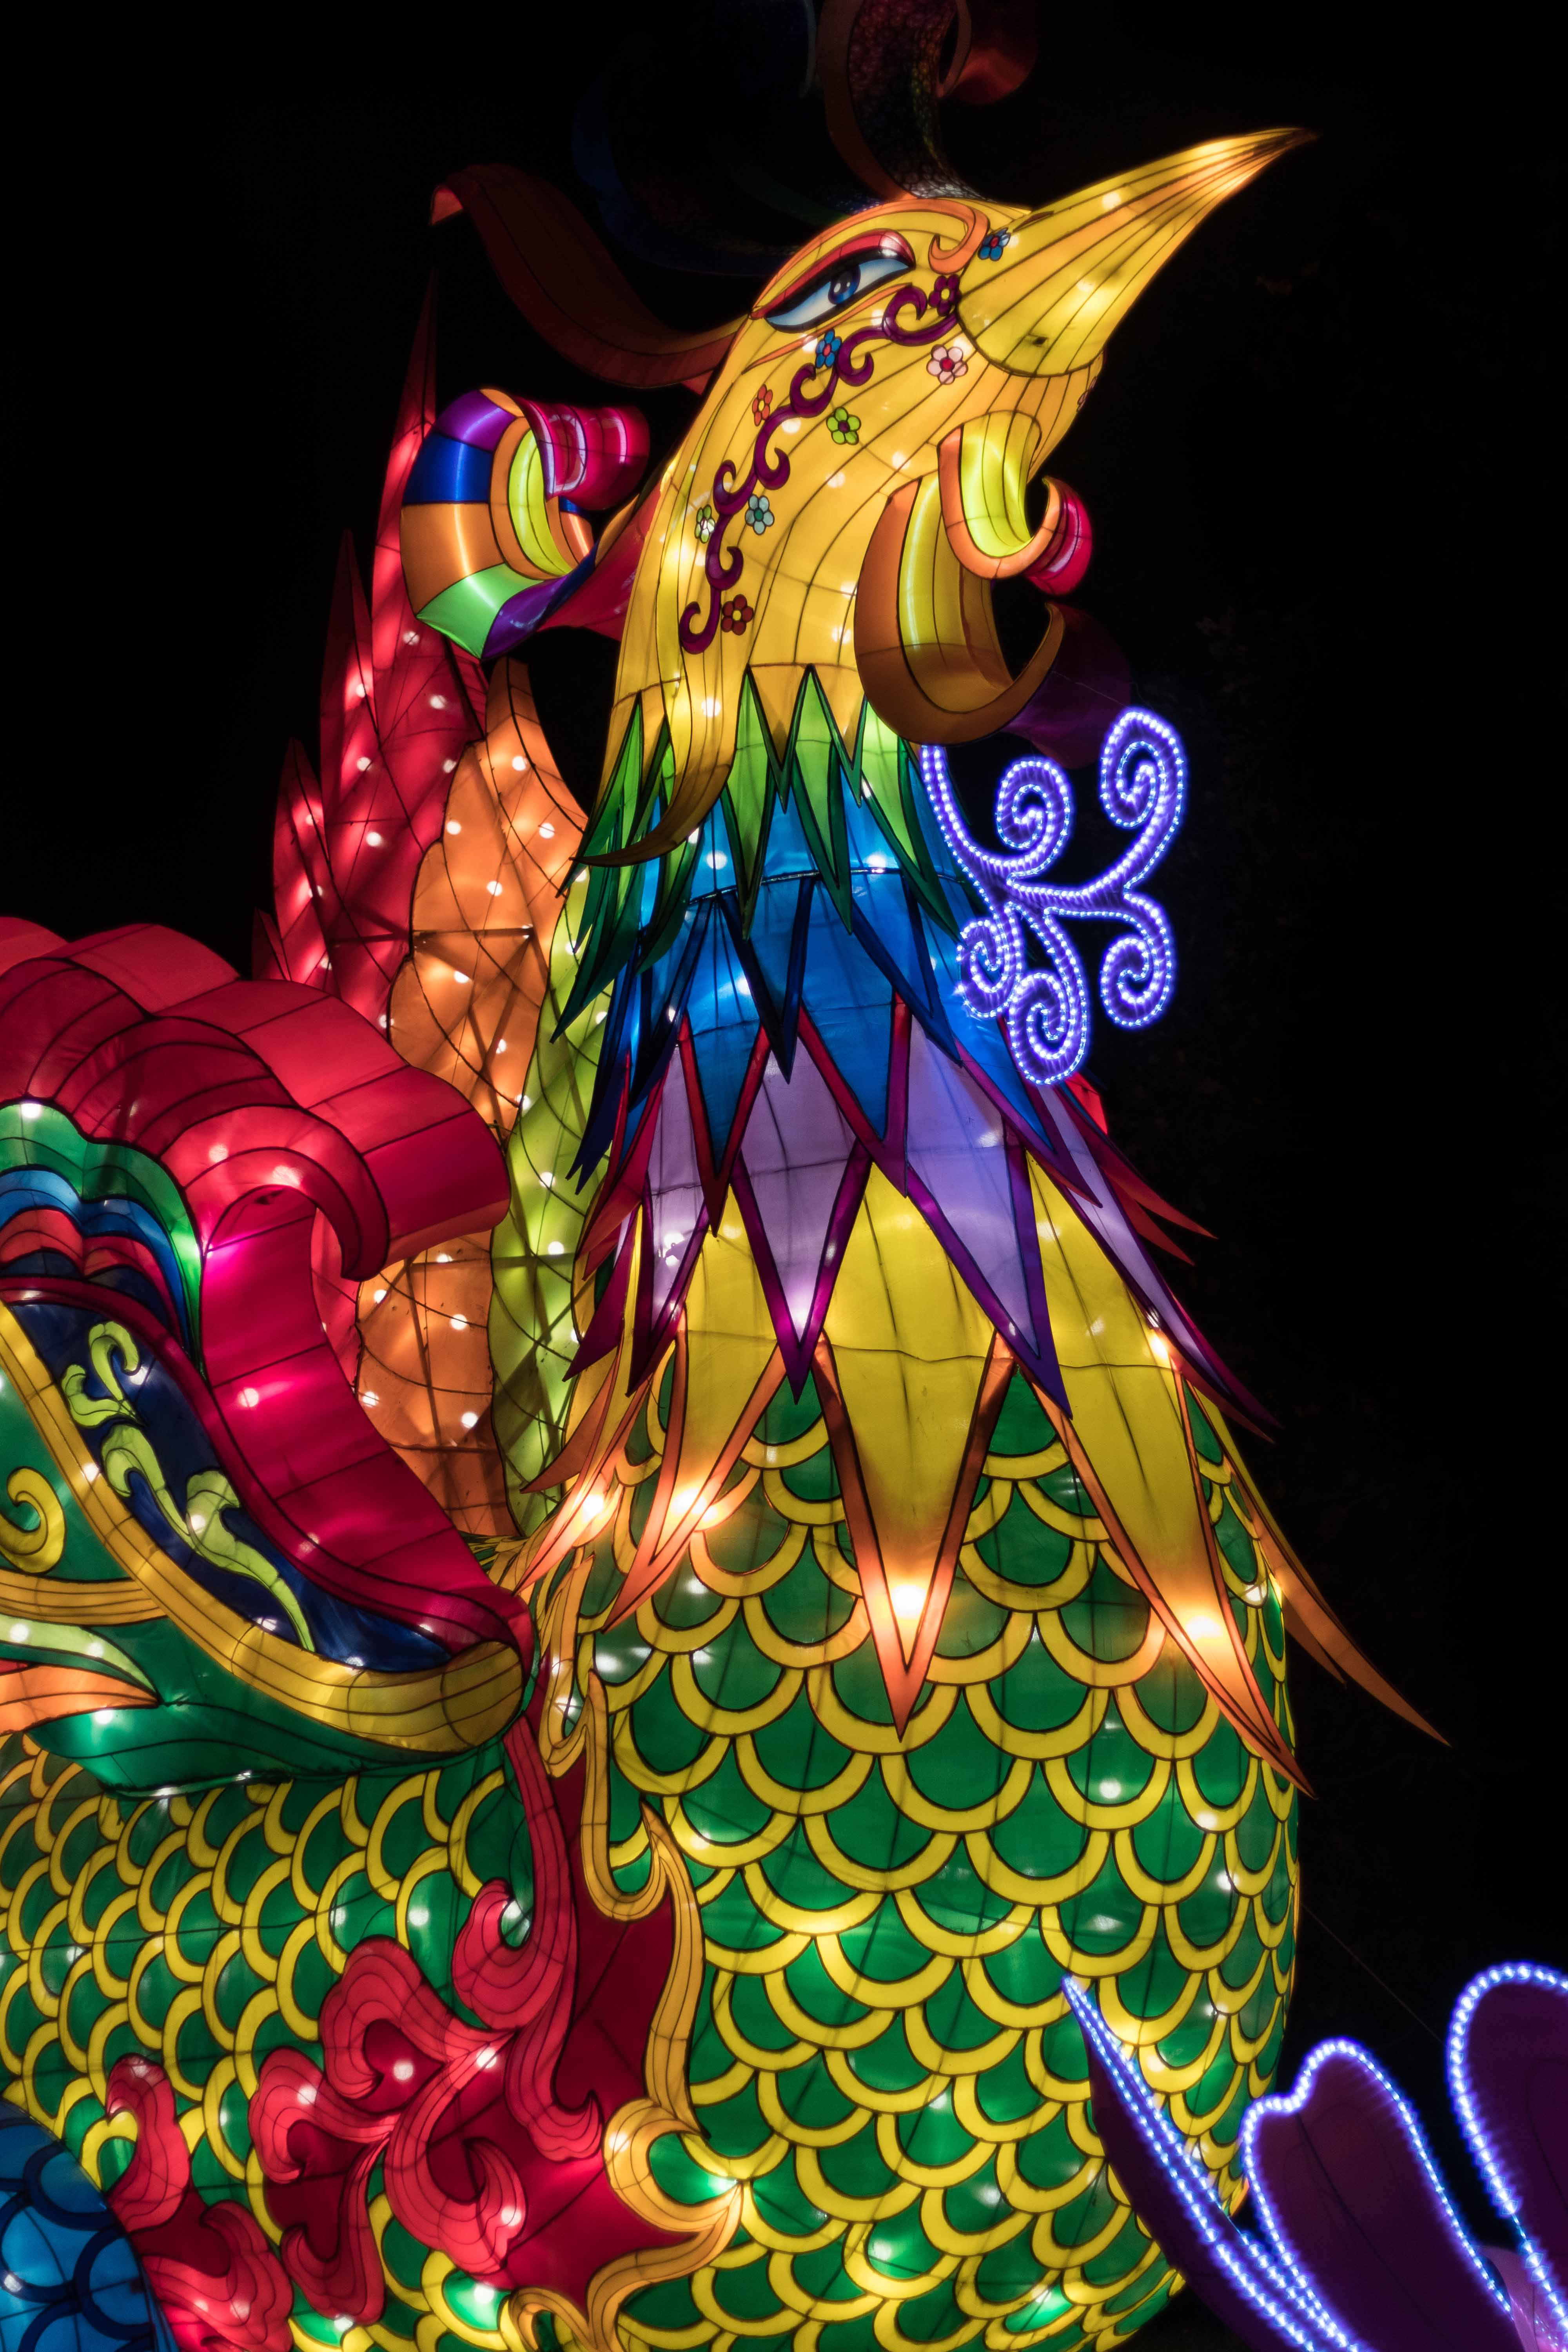 China Lights 2018, Boerner Botanical Gardens, Wisconsin | https://www.roseclearfield.com